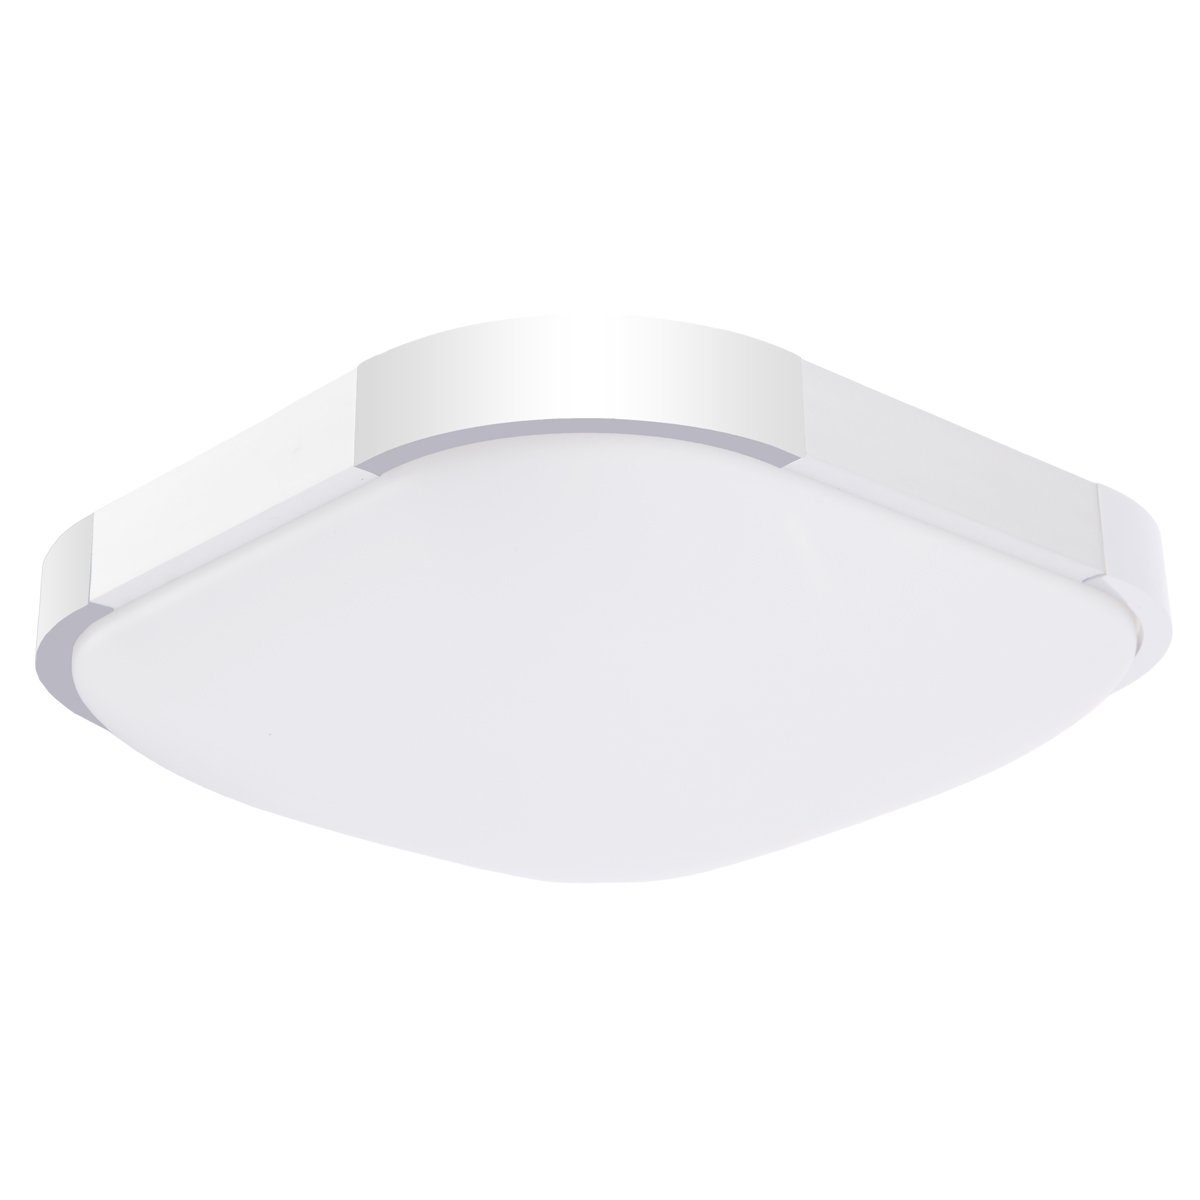 Drosbey 24W LED Flush Mount Ceiling Light, 12in, 240W Incandescent Bulbs Equivalent, 3000 Lumens, 5000K Daylight White, Round Lighting Fixture for Kitchen, Hallway, Bathroom, Bedroom